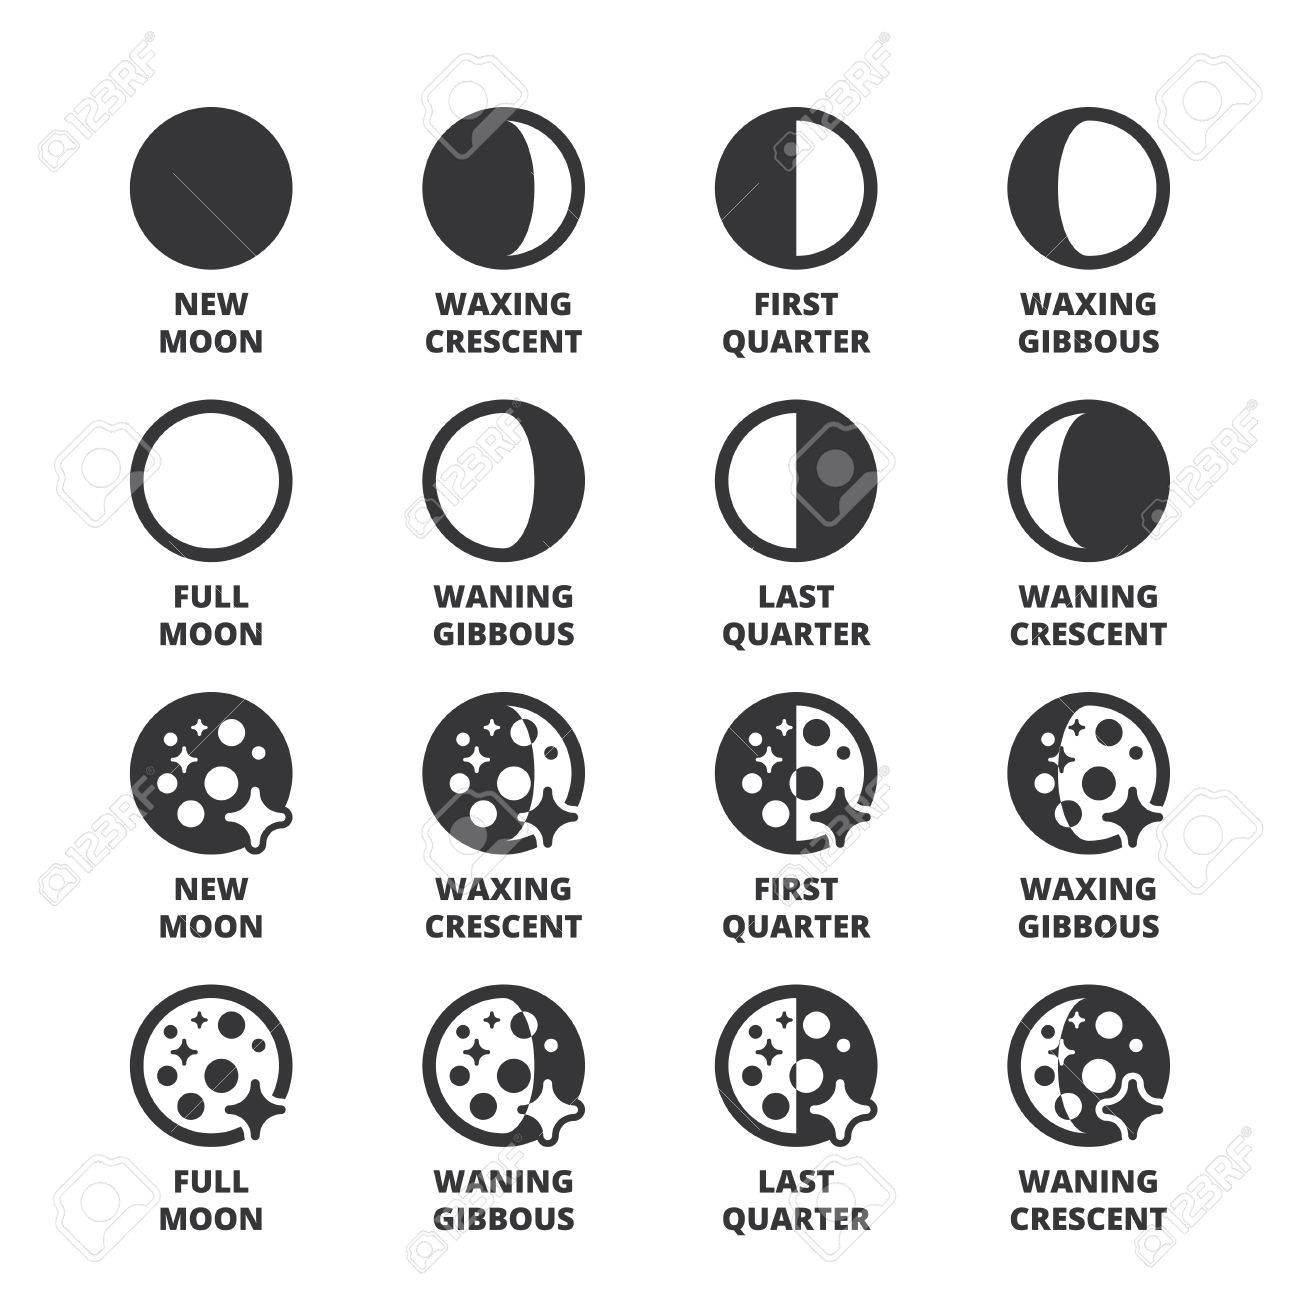 Set Of Black Flat Symbols About The Weather Moon Phases Royalty